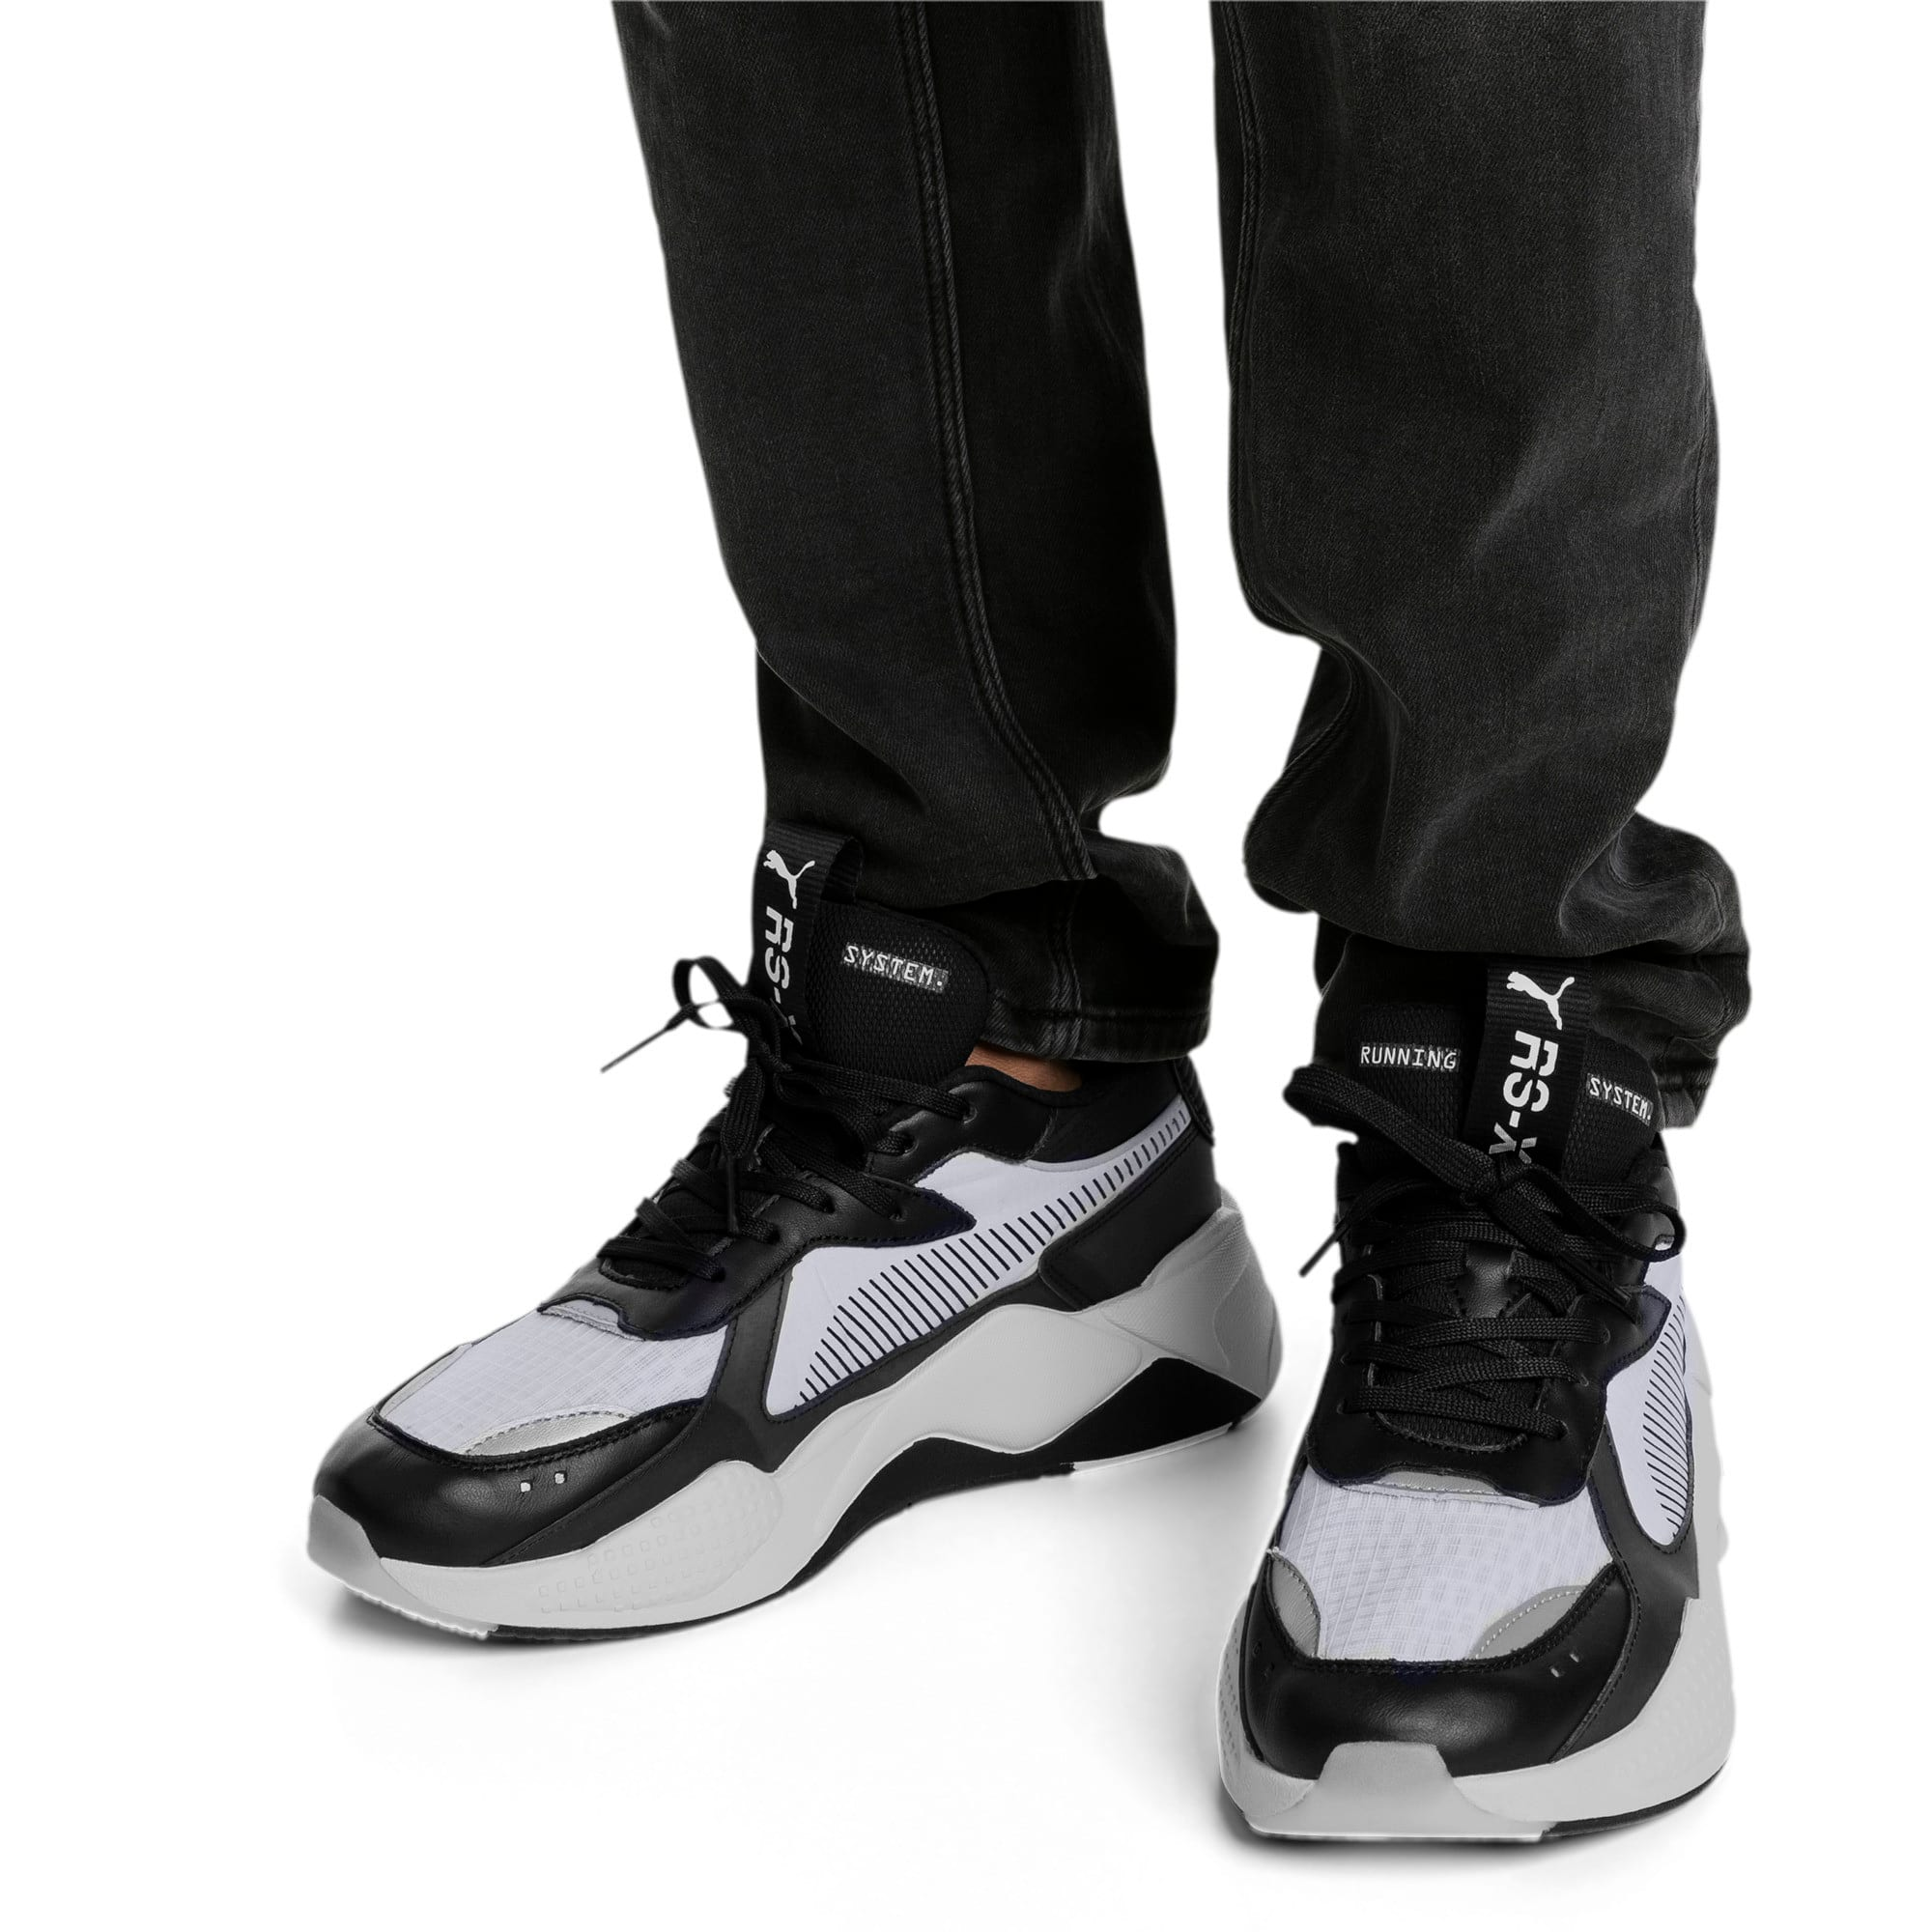 Thumbnail 2 of RS-X TECH スニーカー, Puma Black-Vaporous Gray, medium-JPN